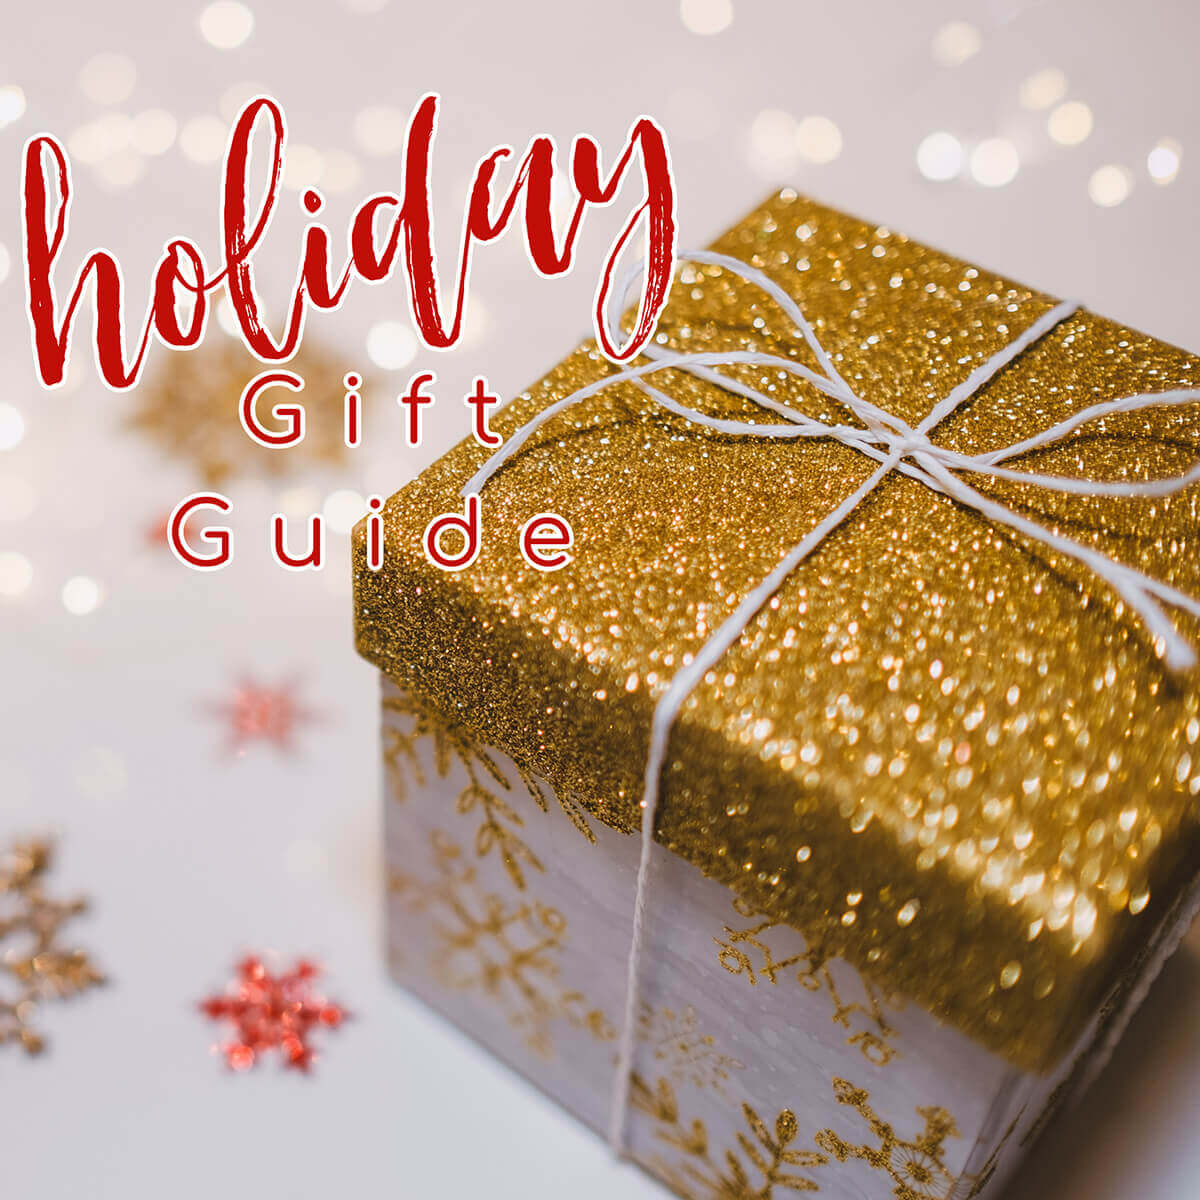 Box wrapped in holiday paper with holiday gift guide overlay.